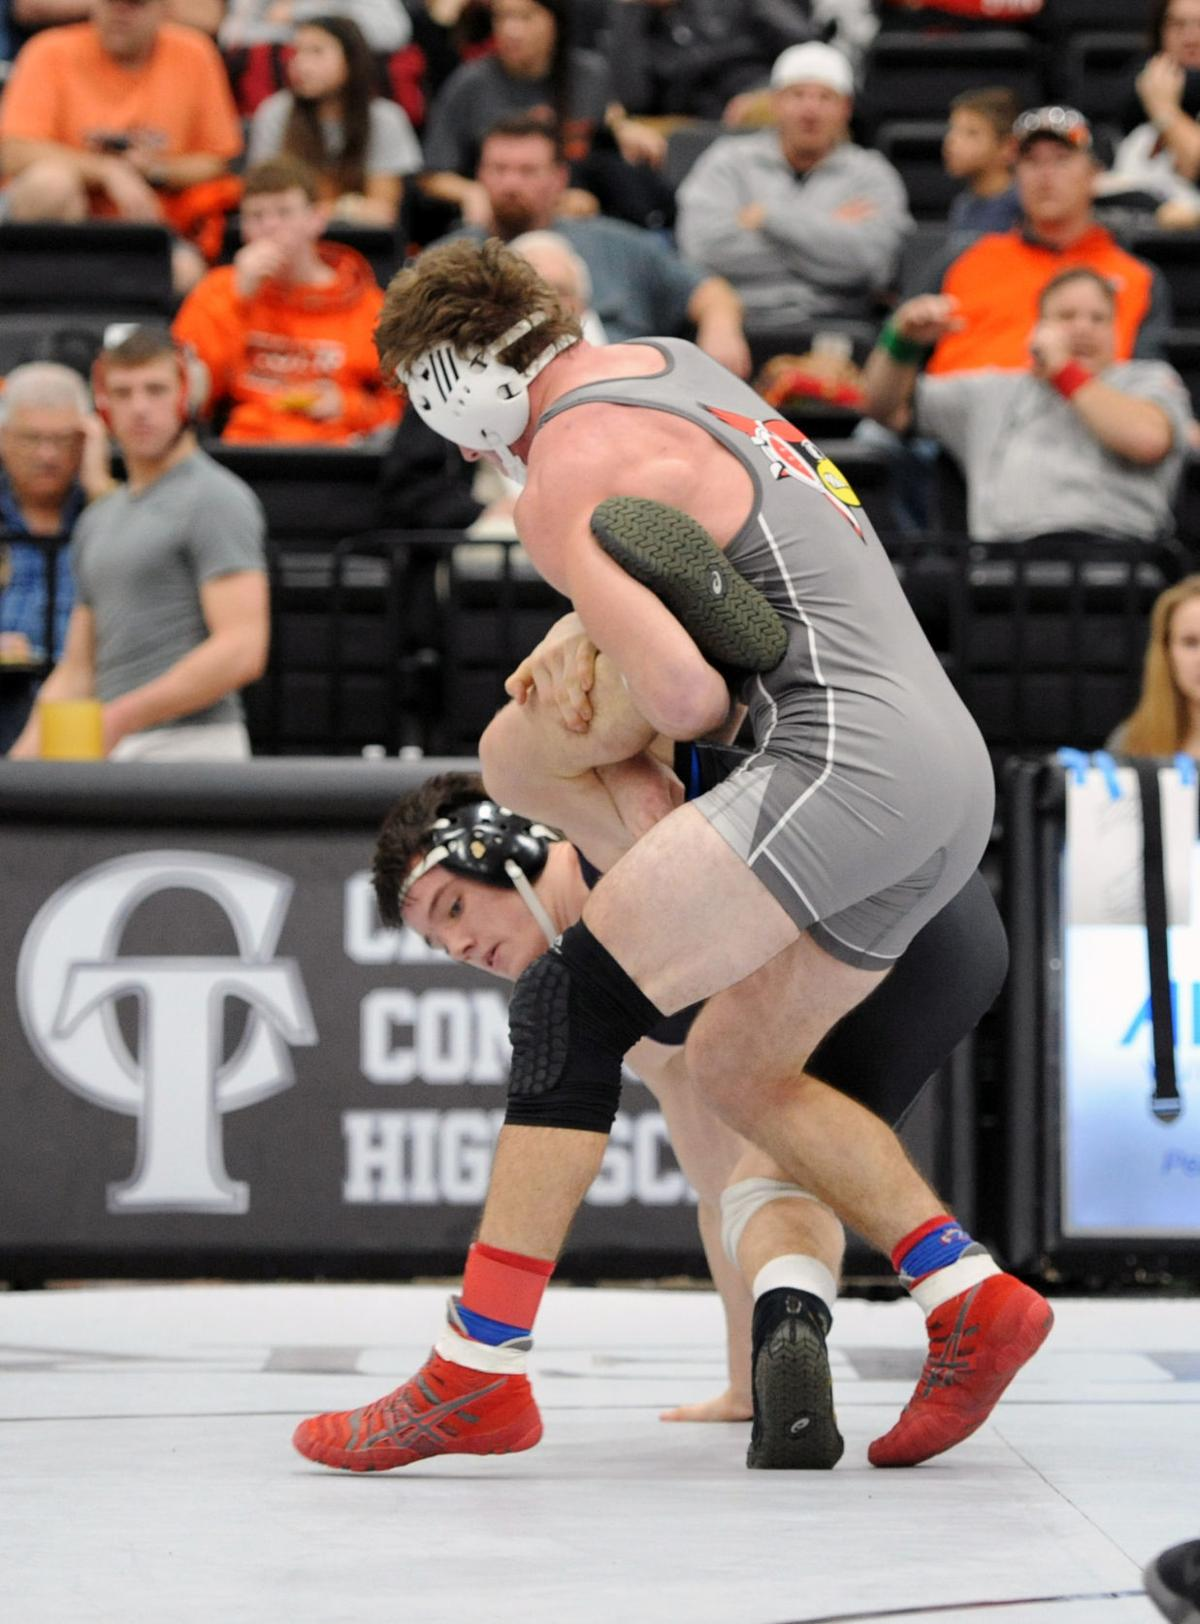 Thirteen wrestlers represent Southern Illinois at the state